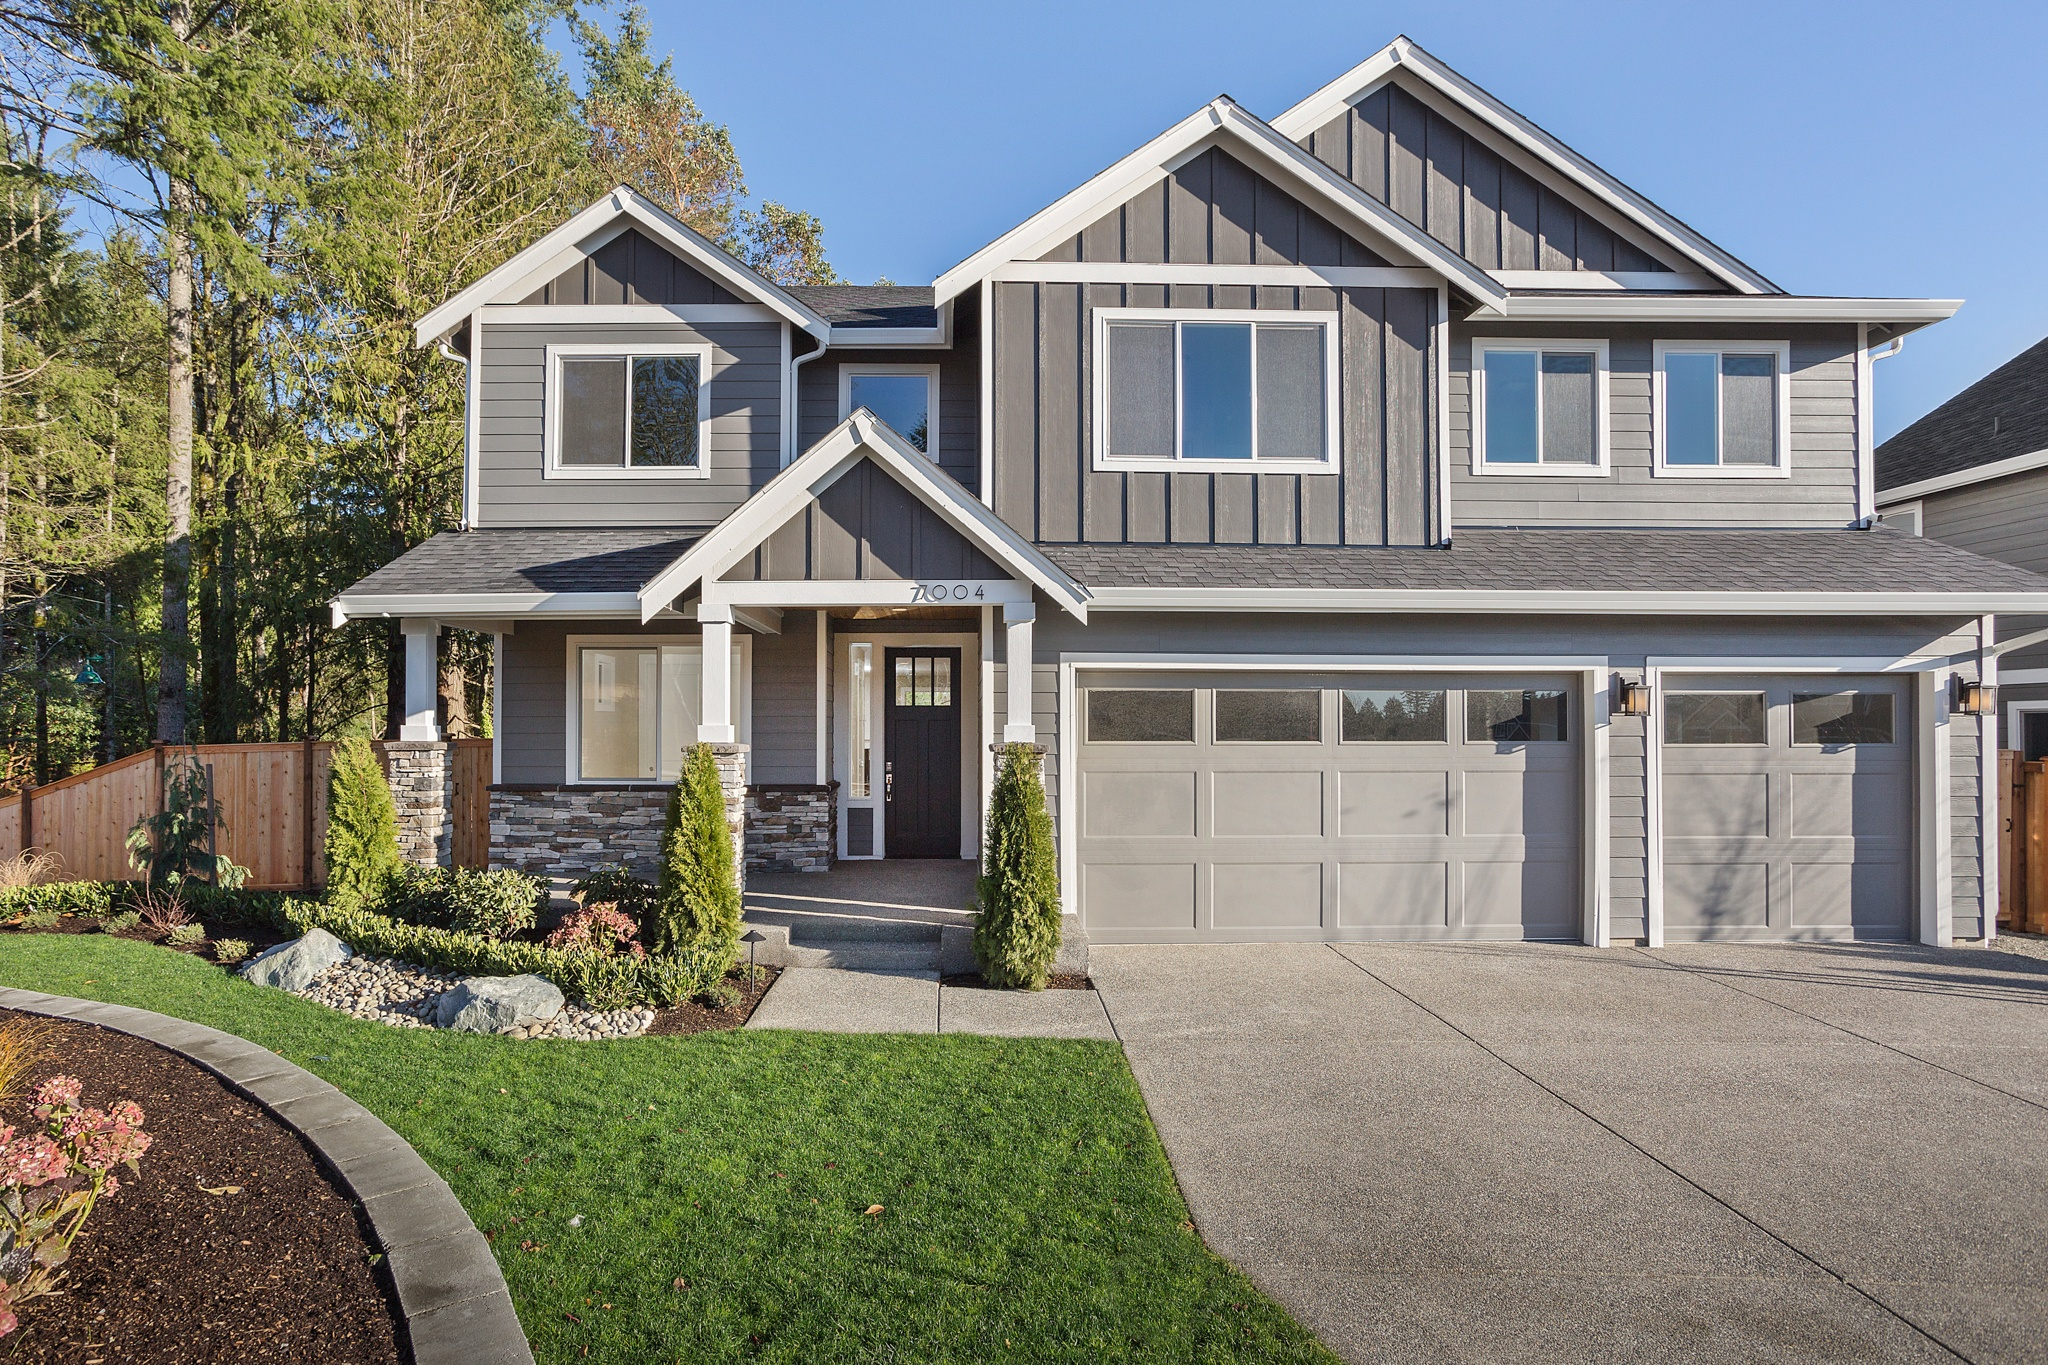 Majestic Exterior   Newberry Trails   Puyallup New Home   Washington Home Builder   Rush Residential